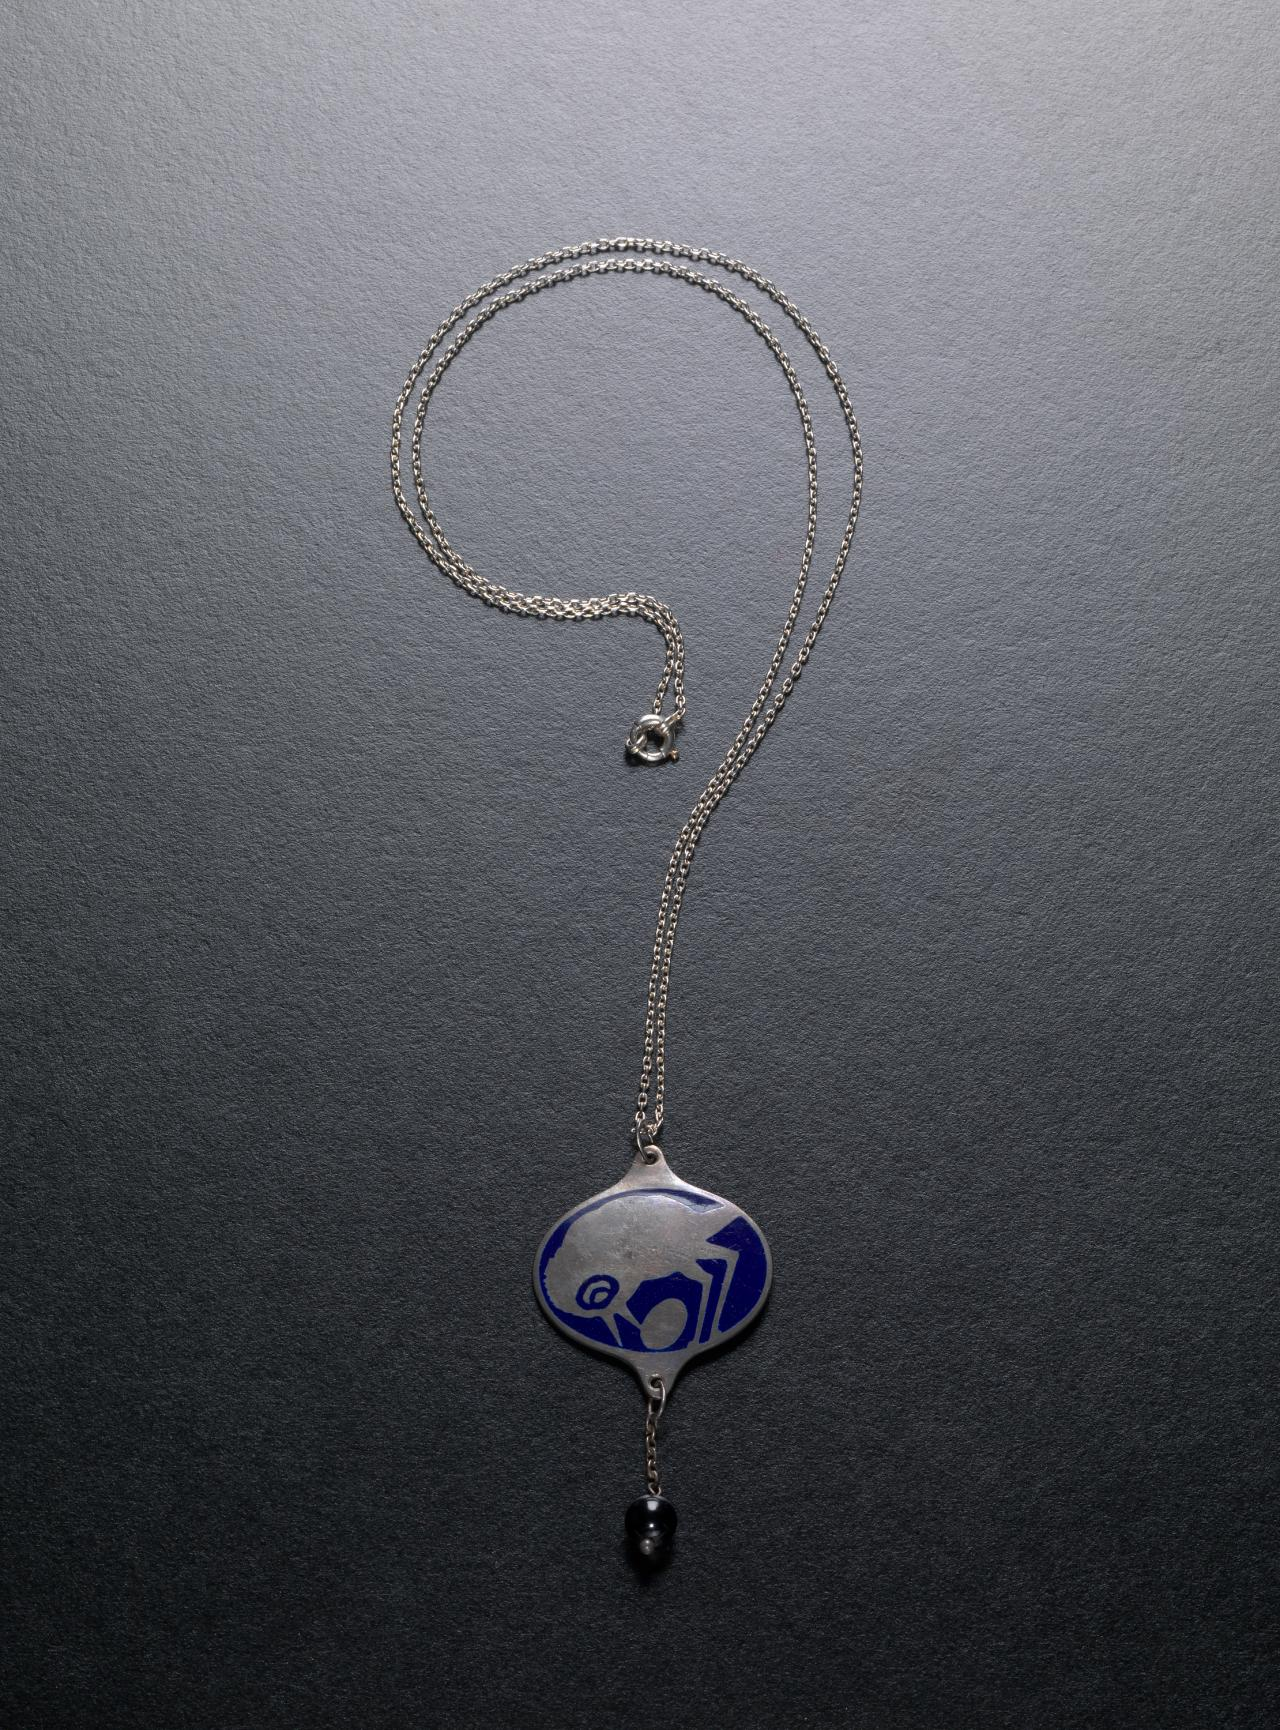 Pendant and chain